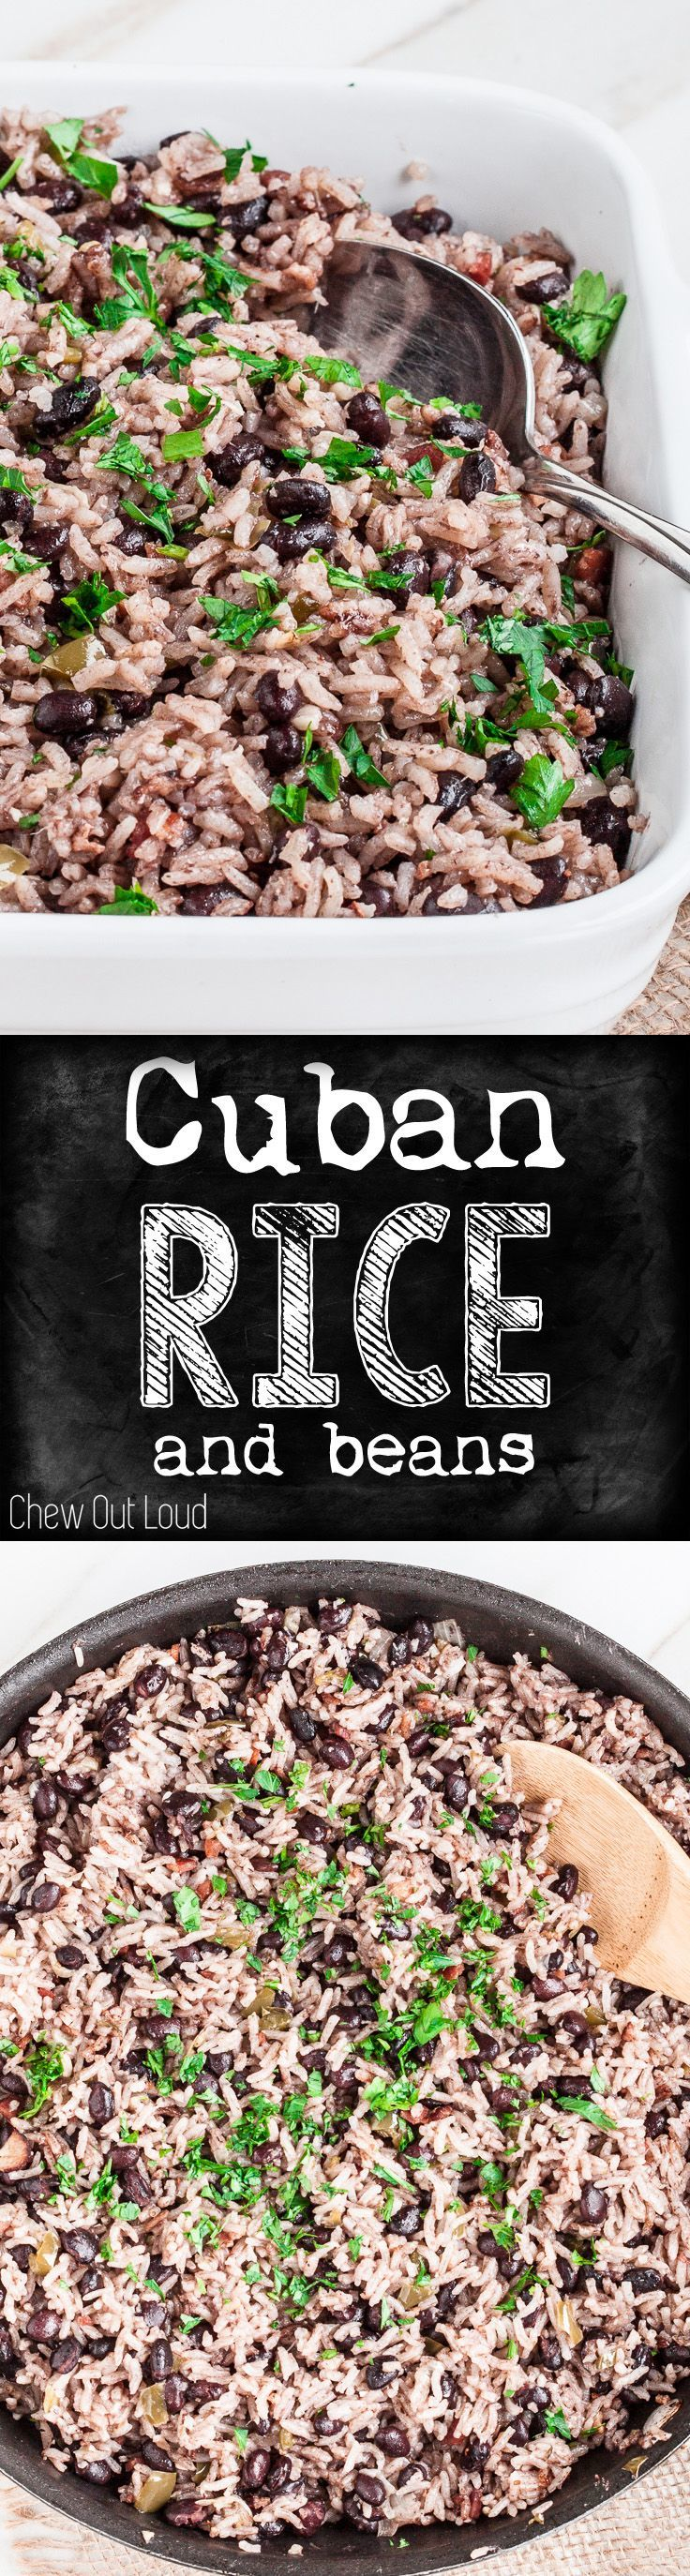 Cuban Rice and Beans Recipe